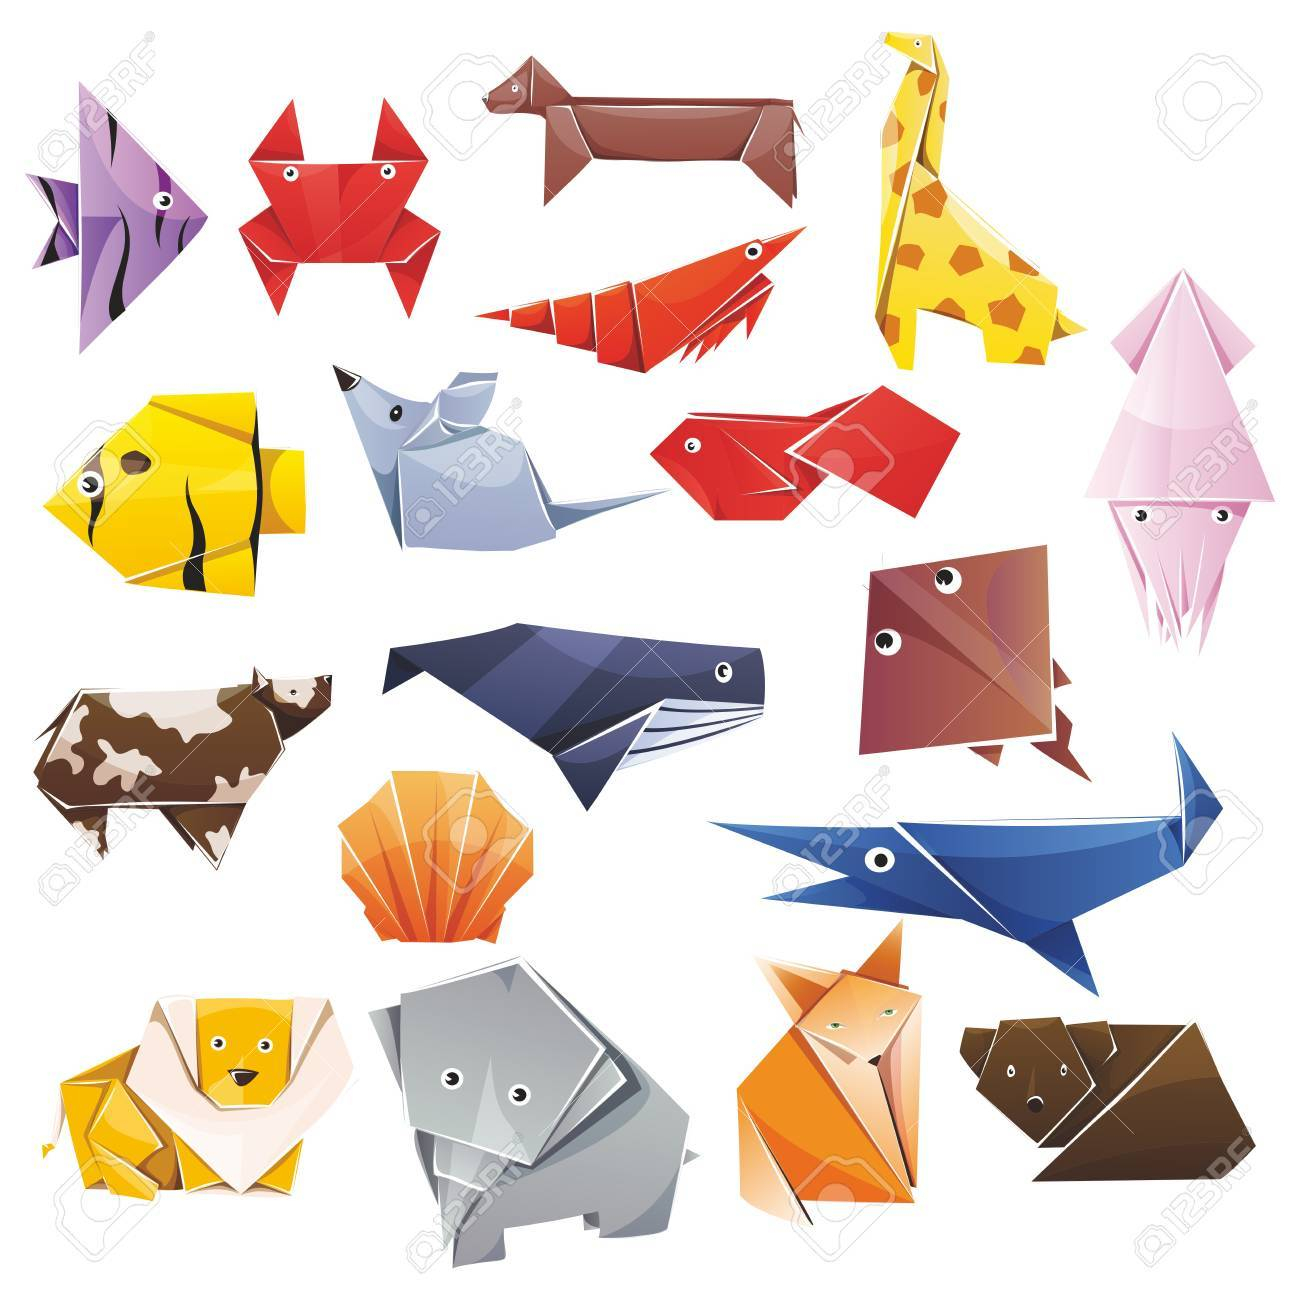 All Animal Origami Articles